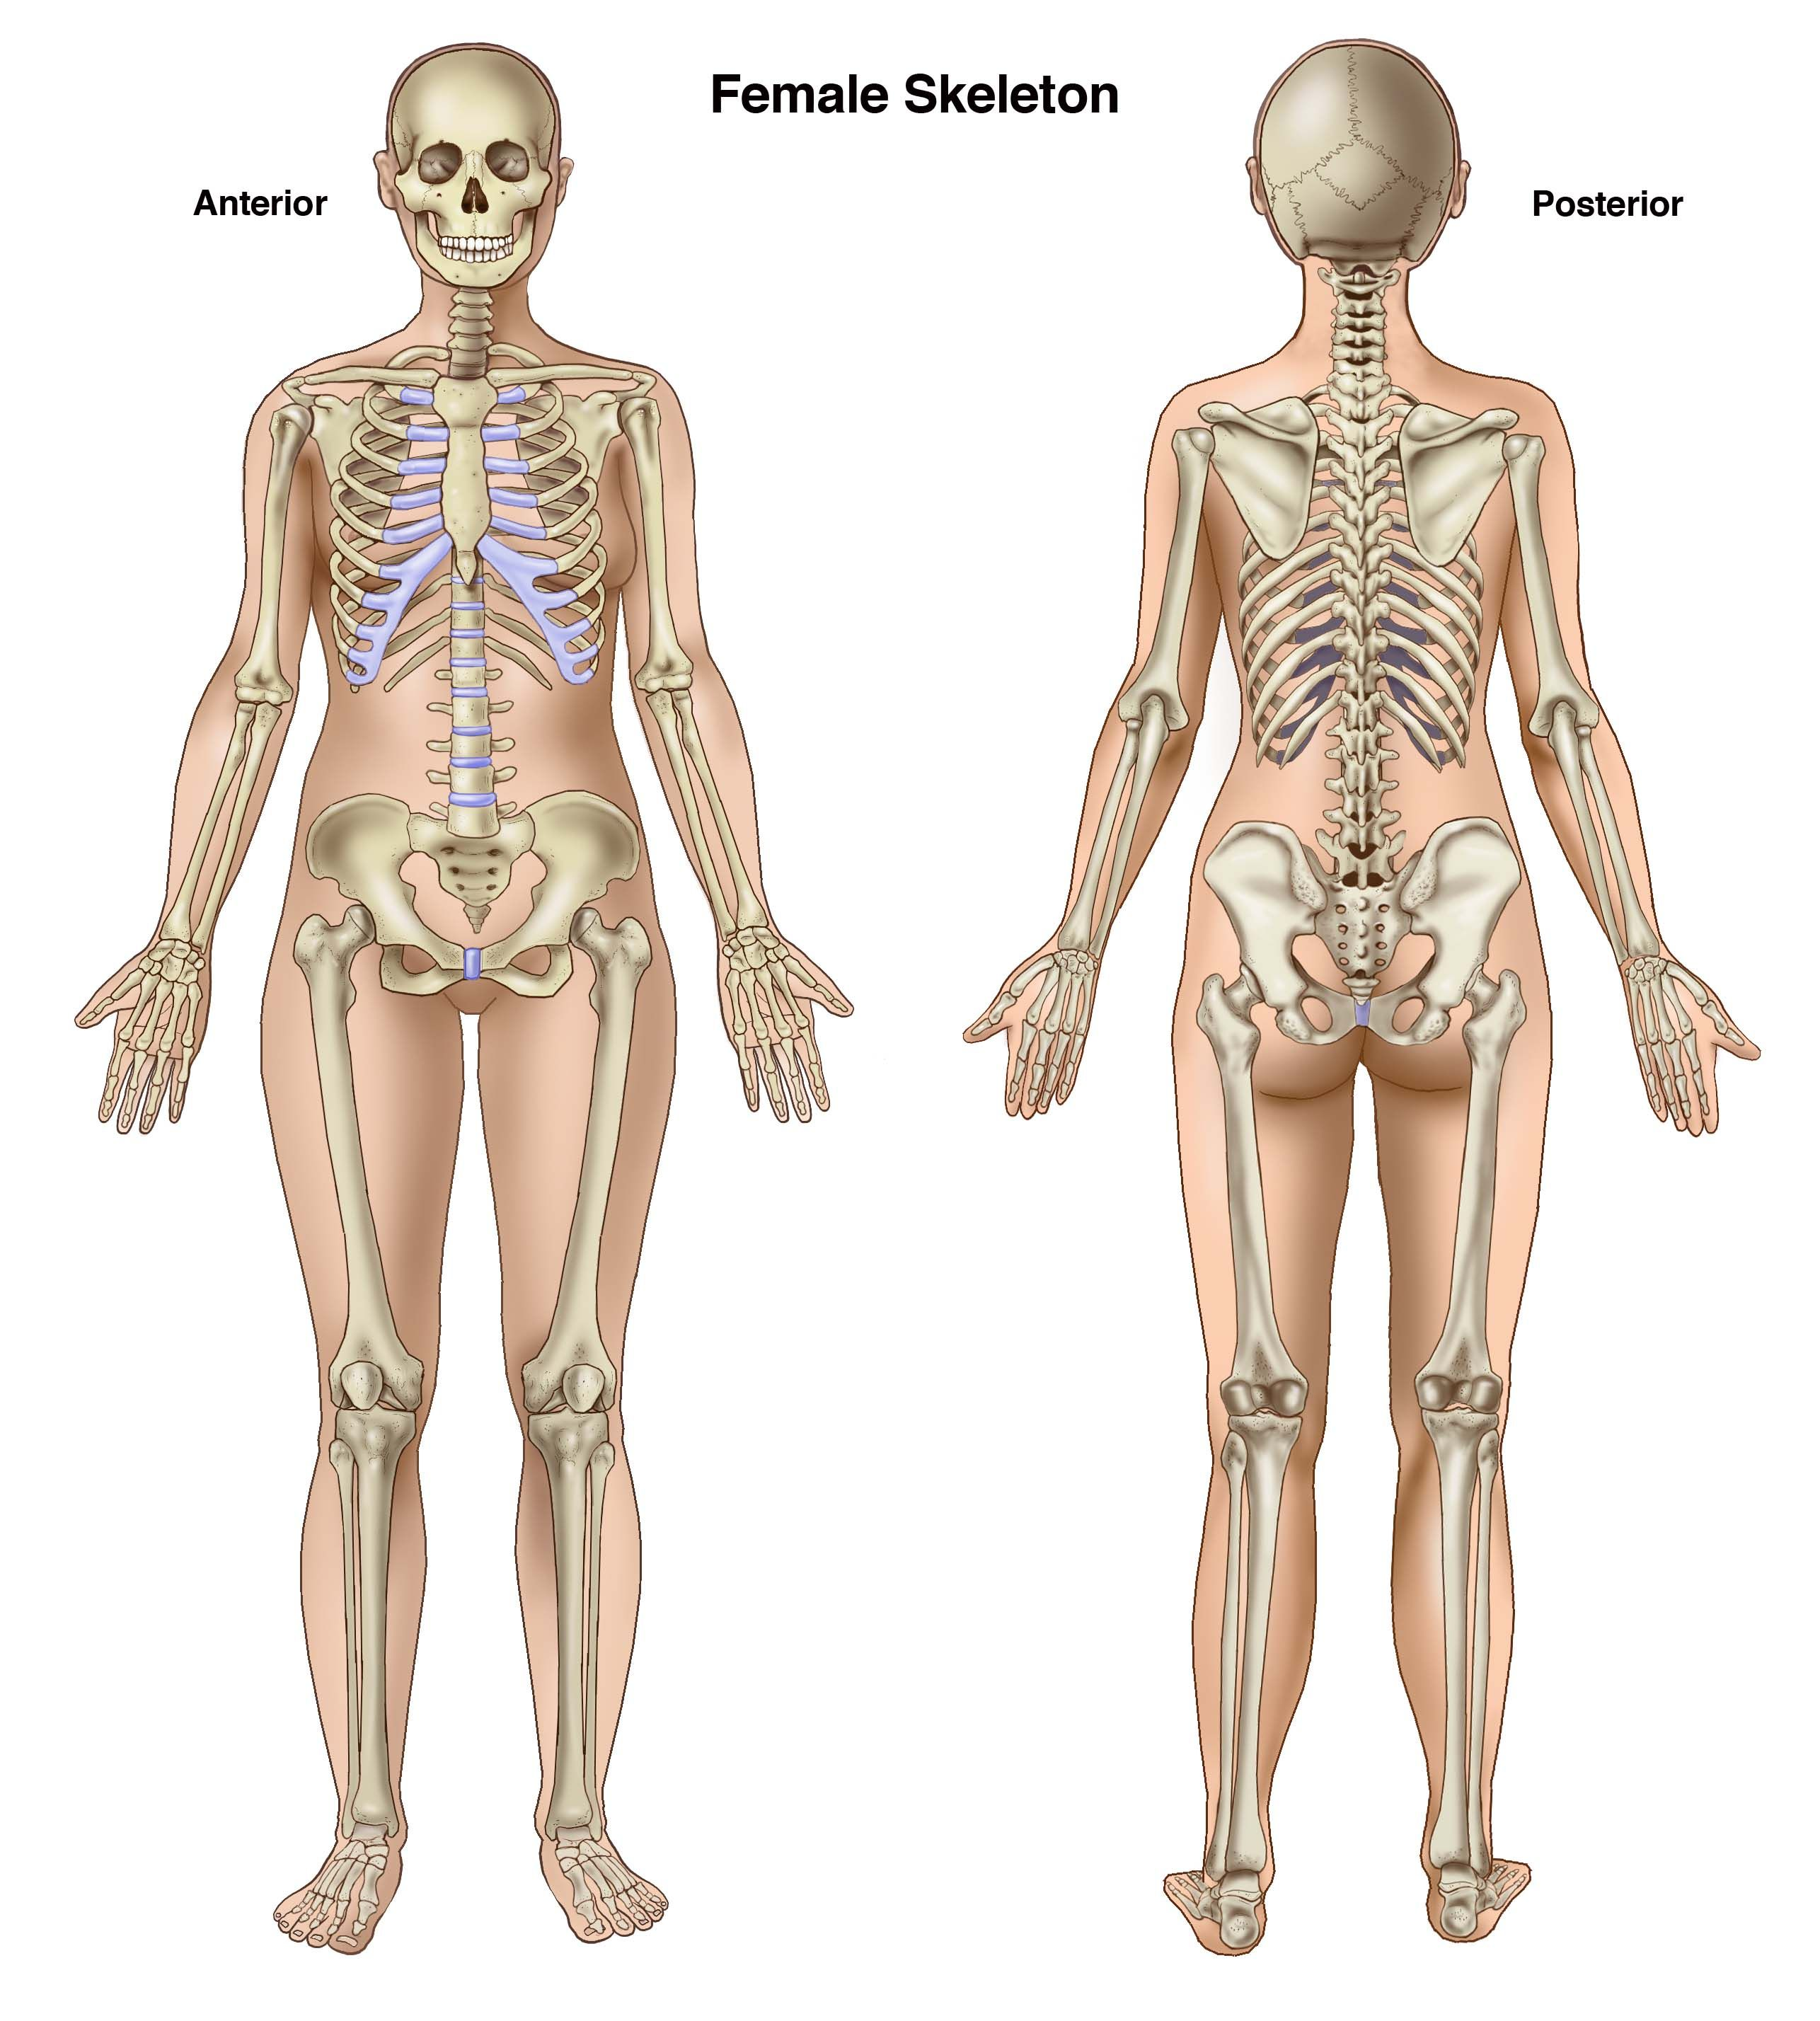 anterior view female skeletal - Google Search | Design class ...